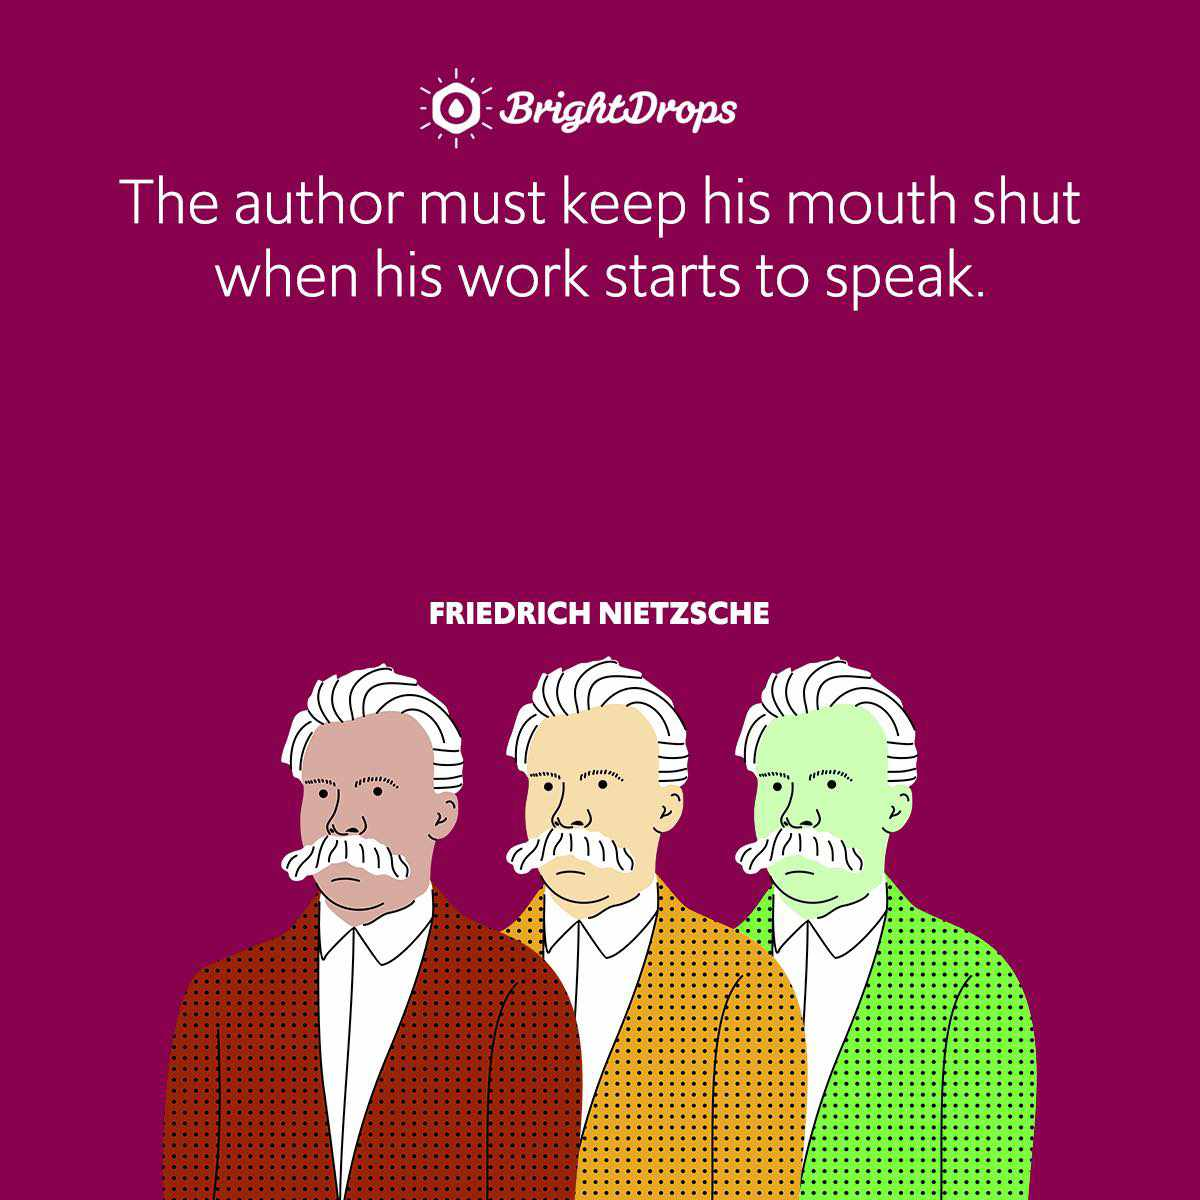 The author must keep his mouth shut when his work starts to speak.